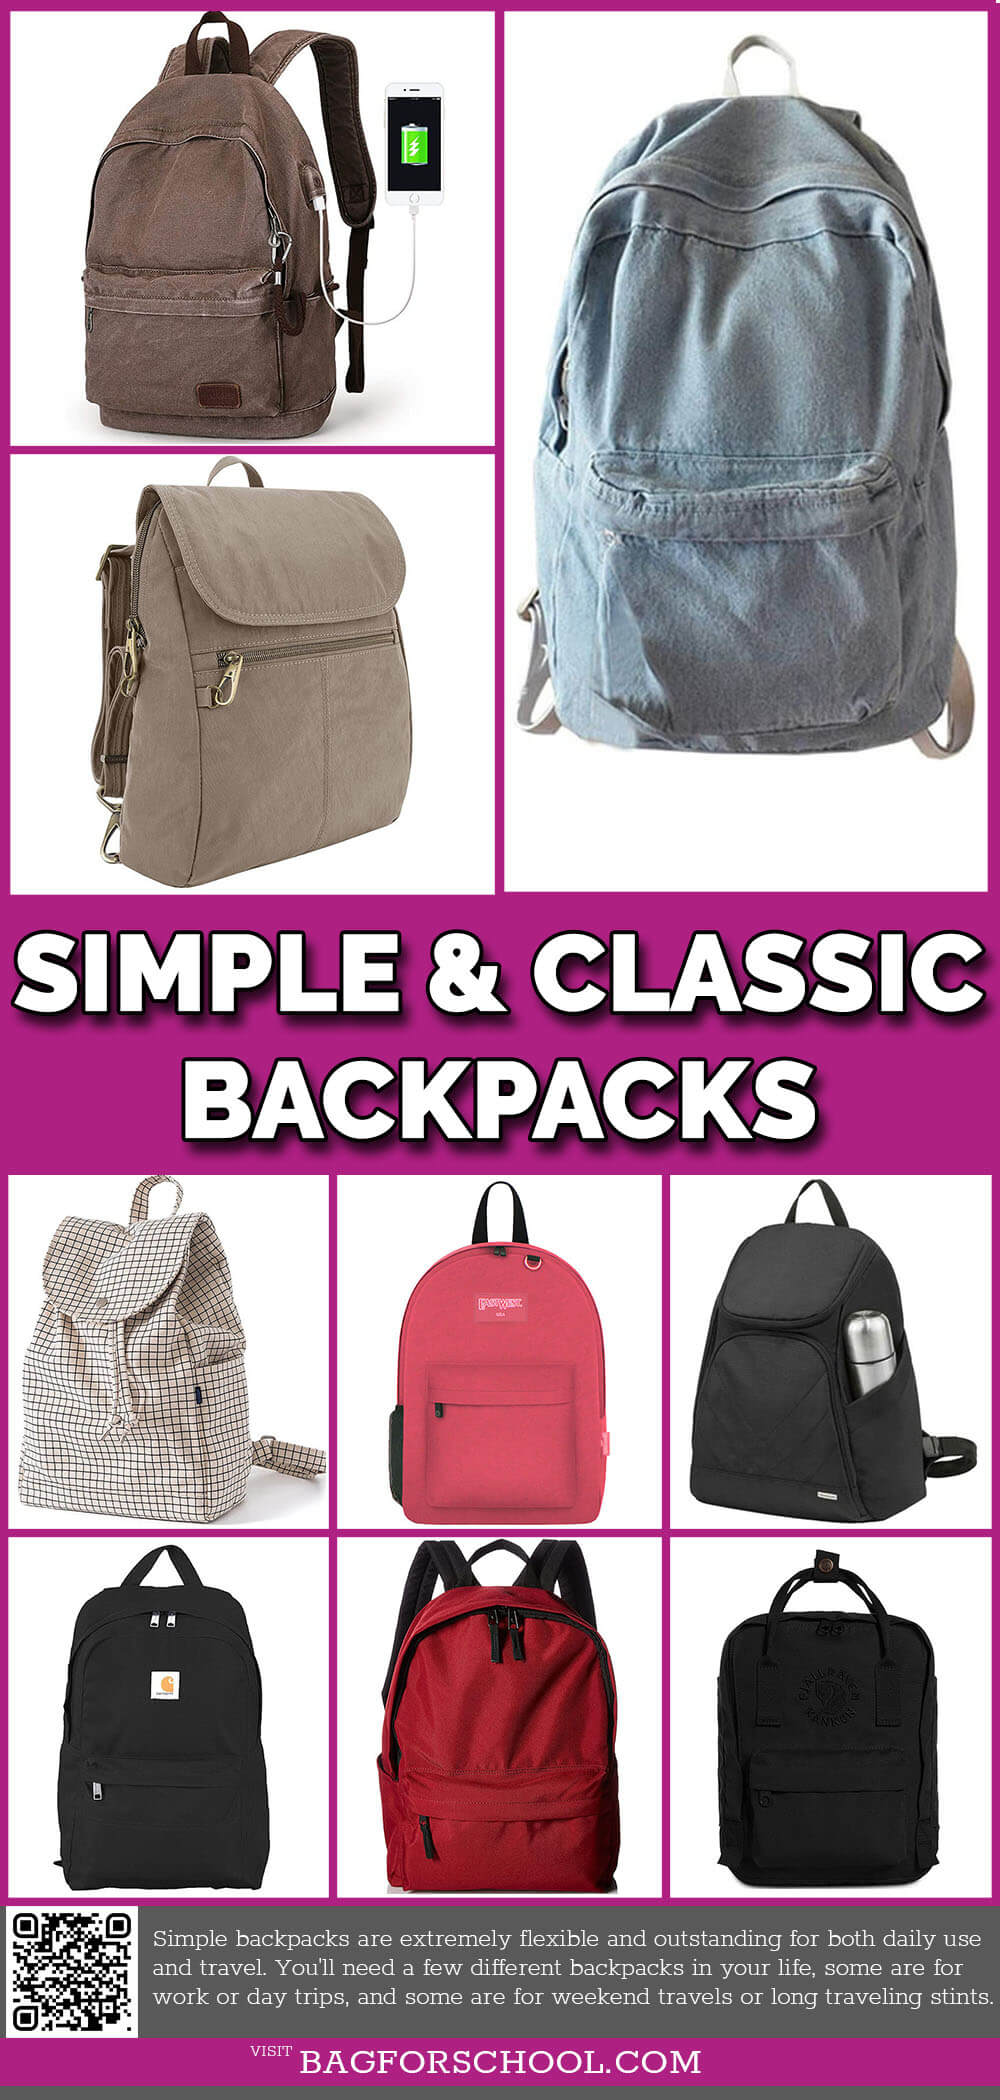 Simple and Classic Backpacks